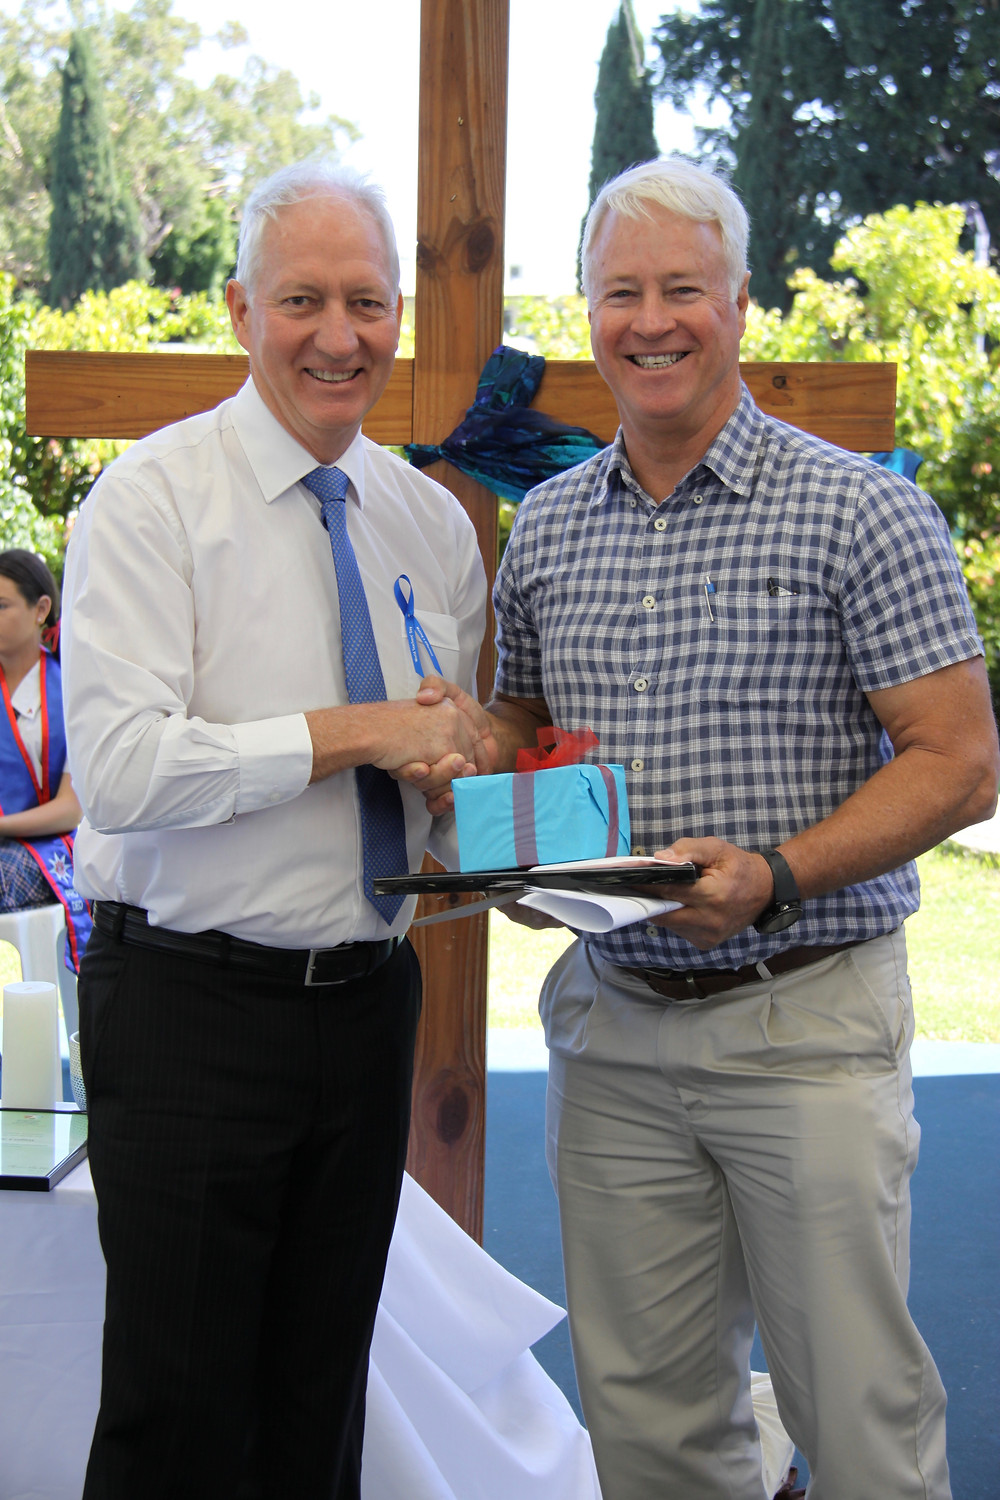 Copyright 2018 Bryan W Foster, Peter Hurley Principal presenting 40th Teaching Anniversary to Bryan Foster. Just prior to retirement.